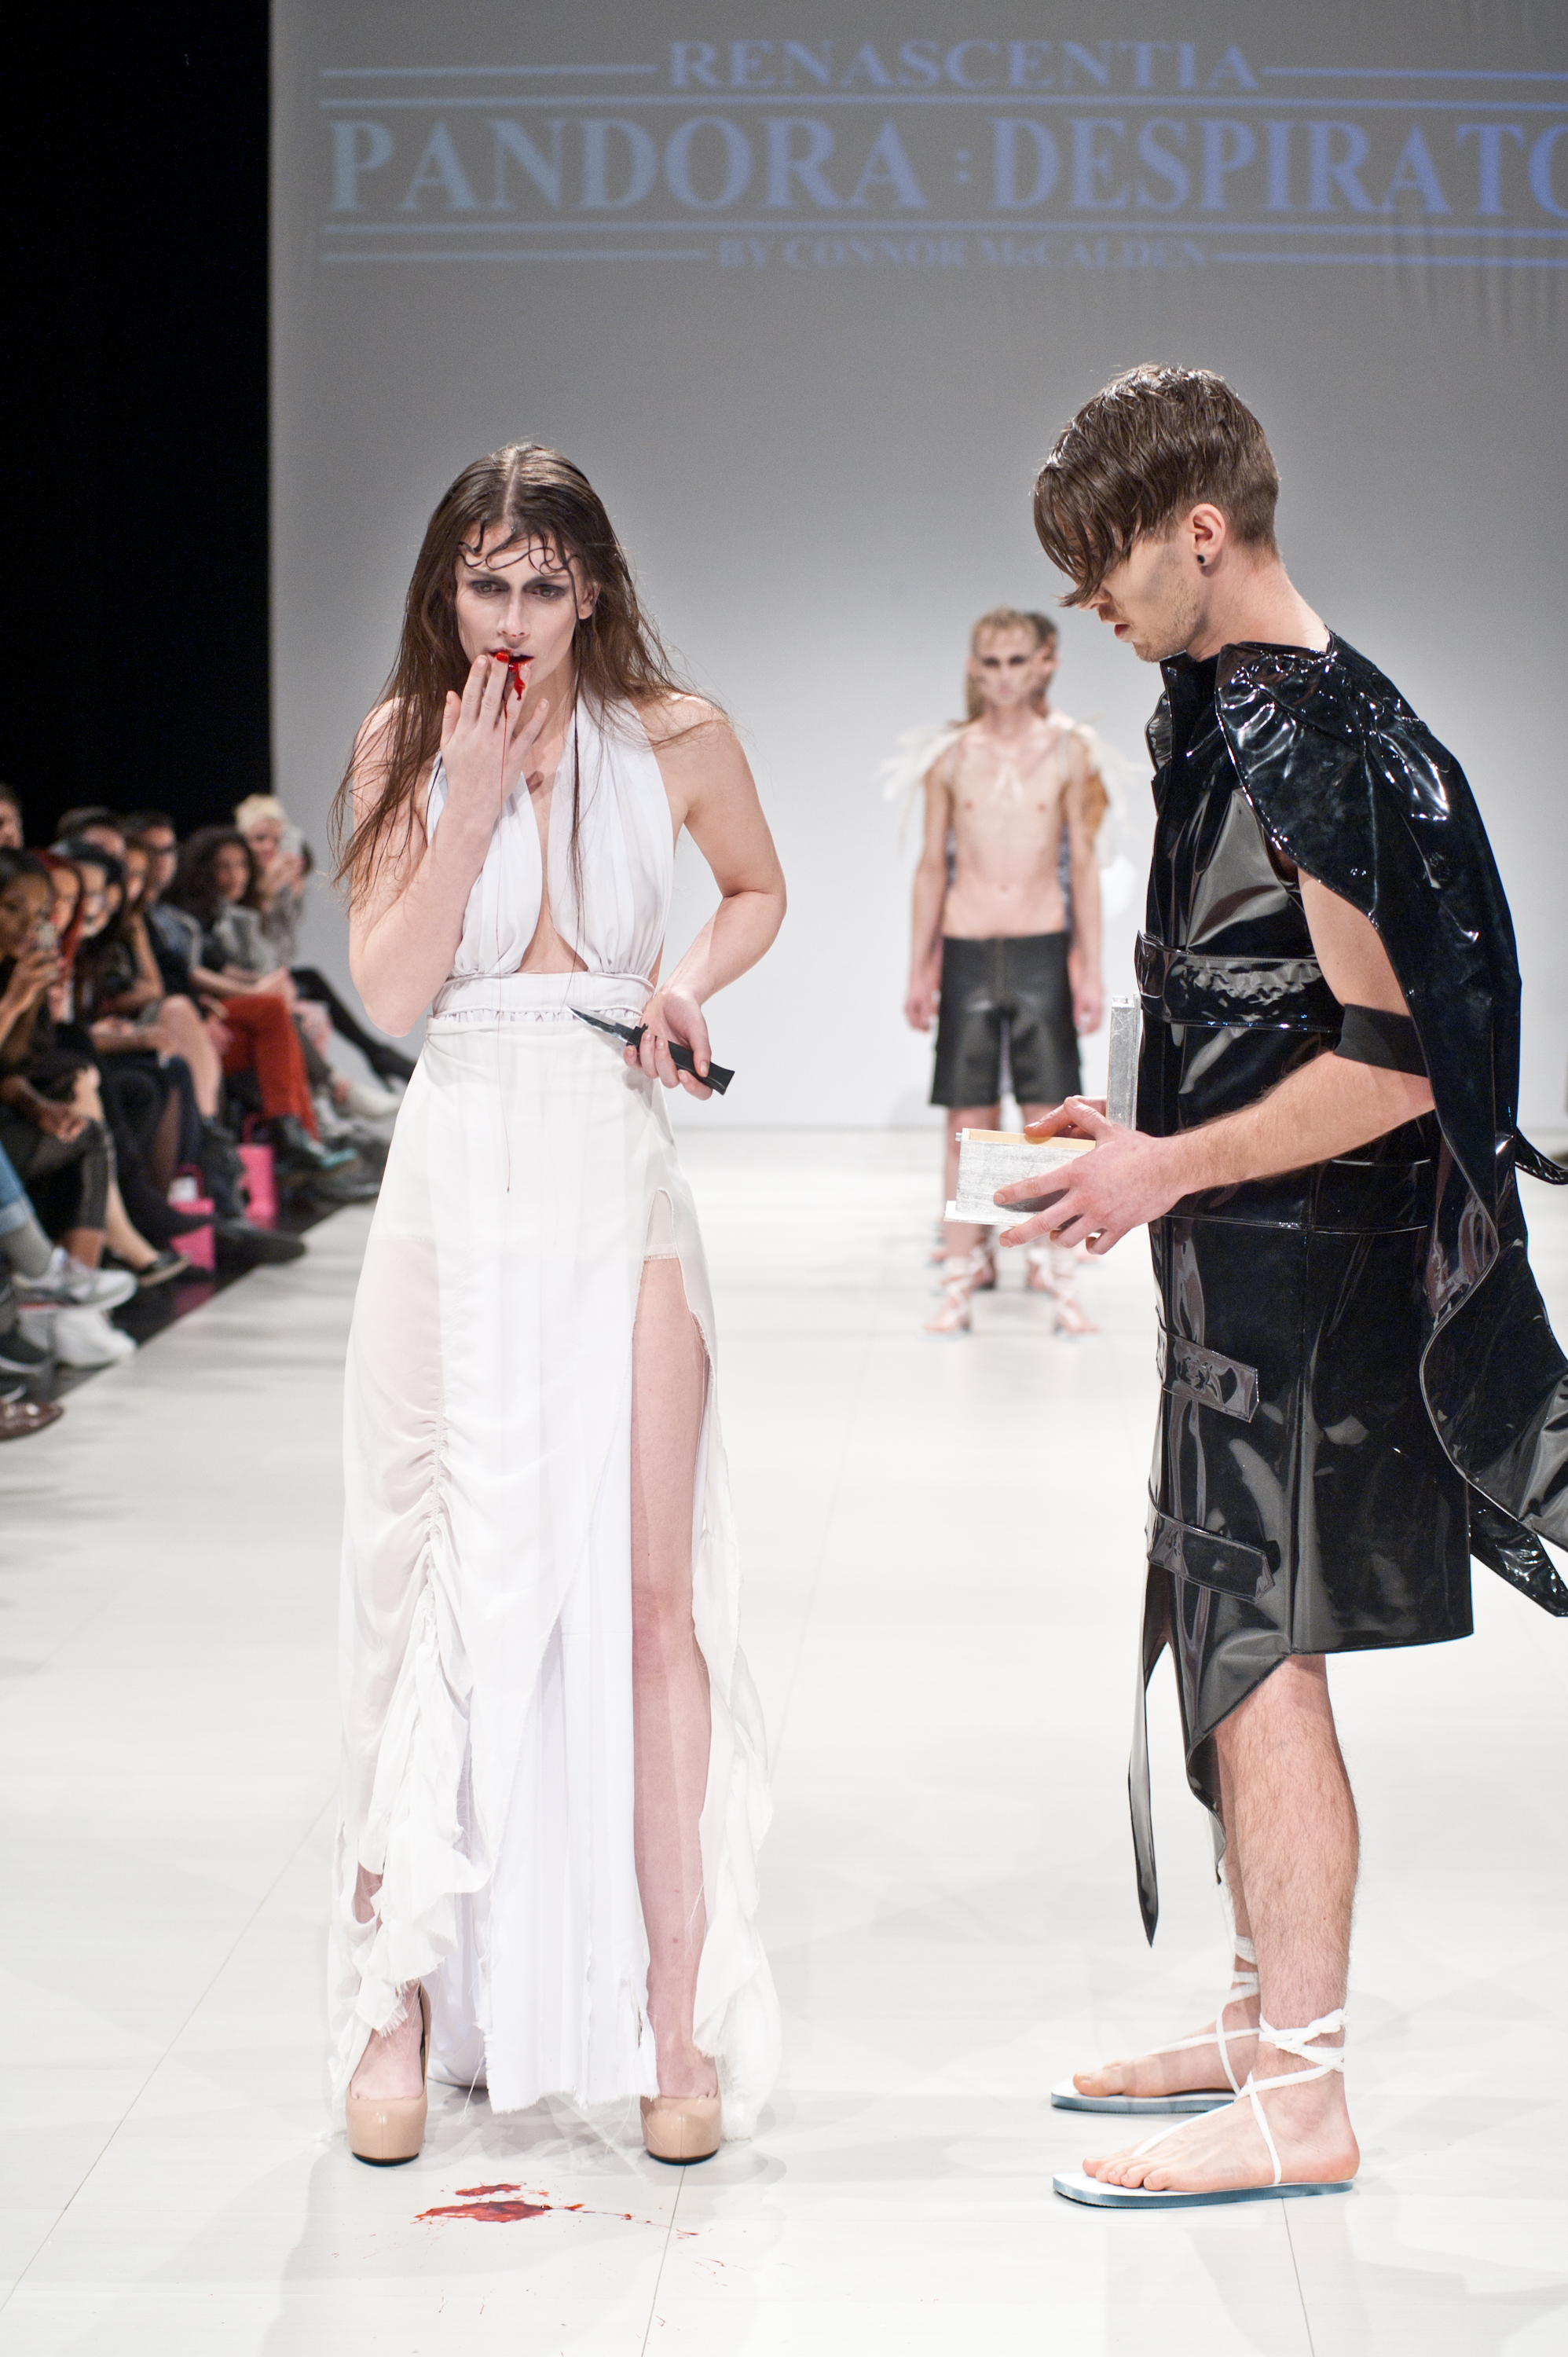 fashion-art-toronto-2015-RenascentiabyConnorMcCalden